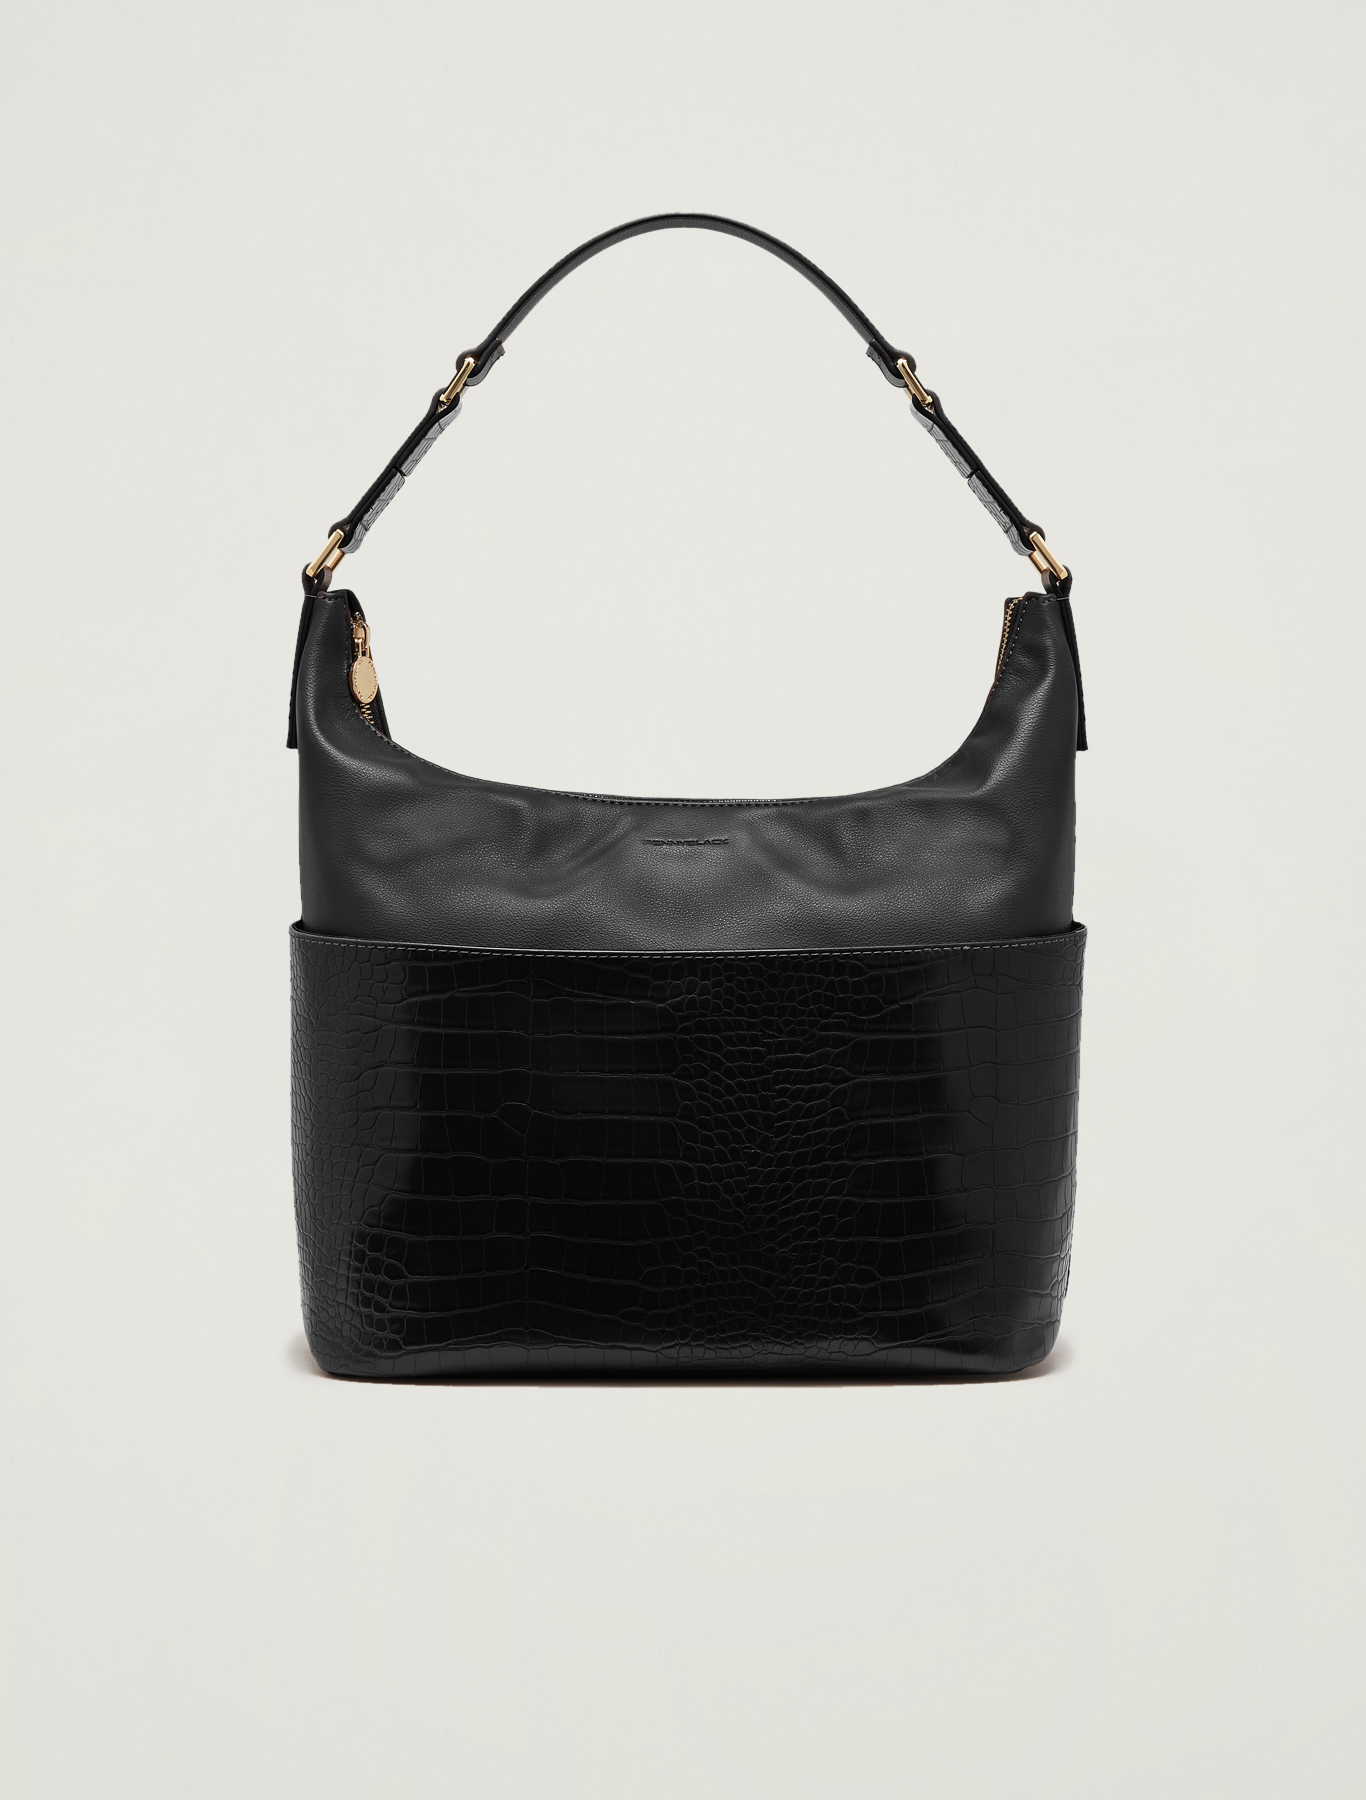 Croc-print hobo bag - black - pennyblack